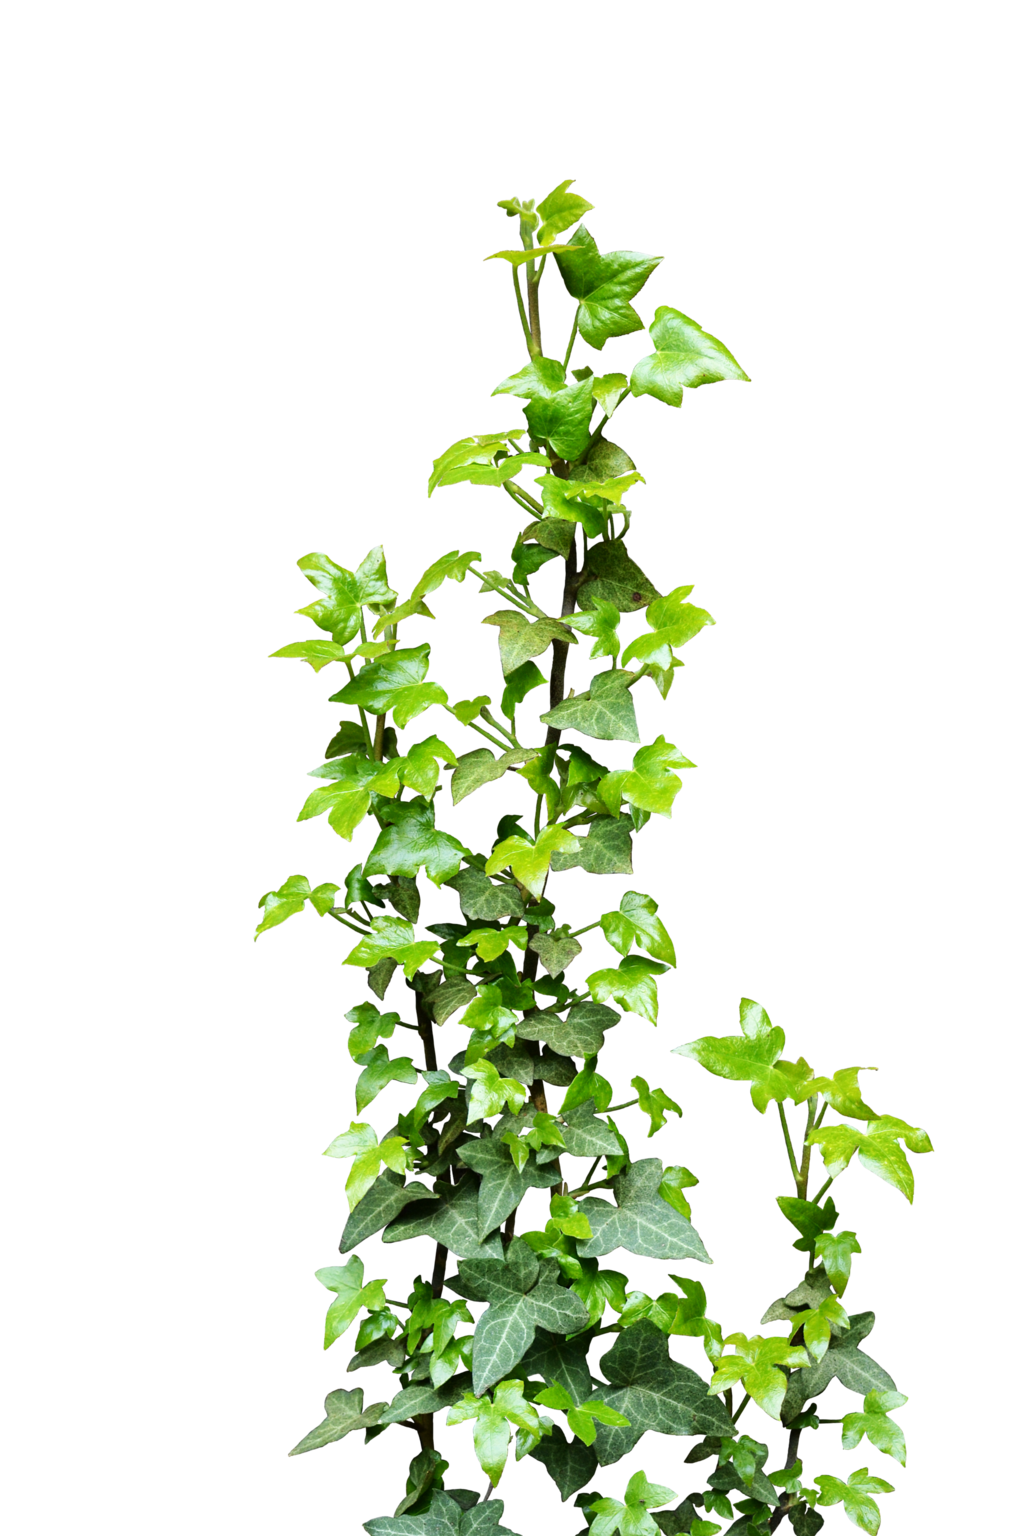 Tree With Leaves Falling Wallpaper Ivy Transparent Png Pictures Free Icons And Png Backgrounds